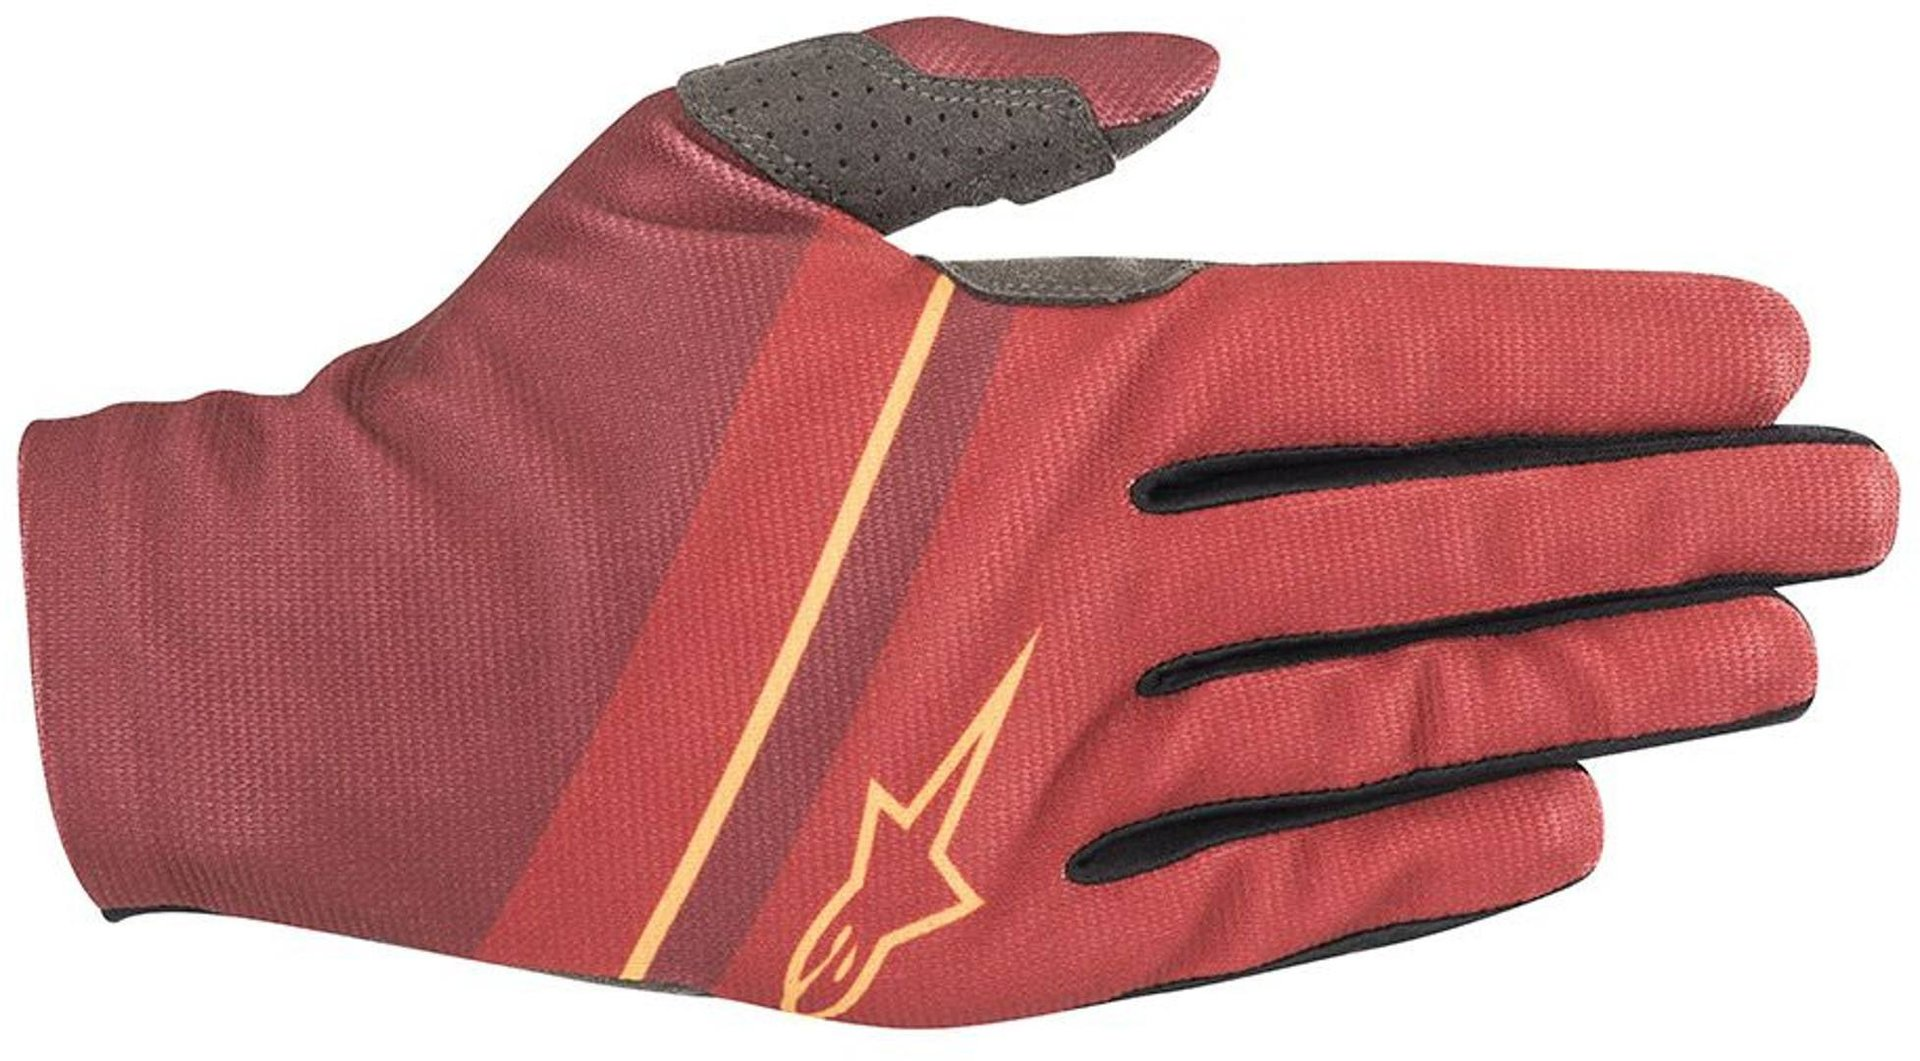 Alpinestars Aspen Plus Bicycle Gloves, red, Size L, red, Size L